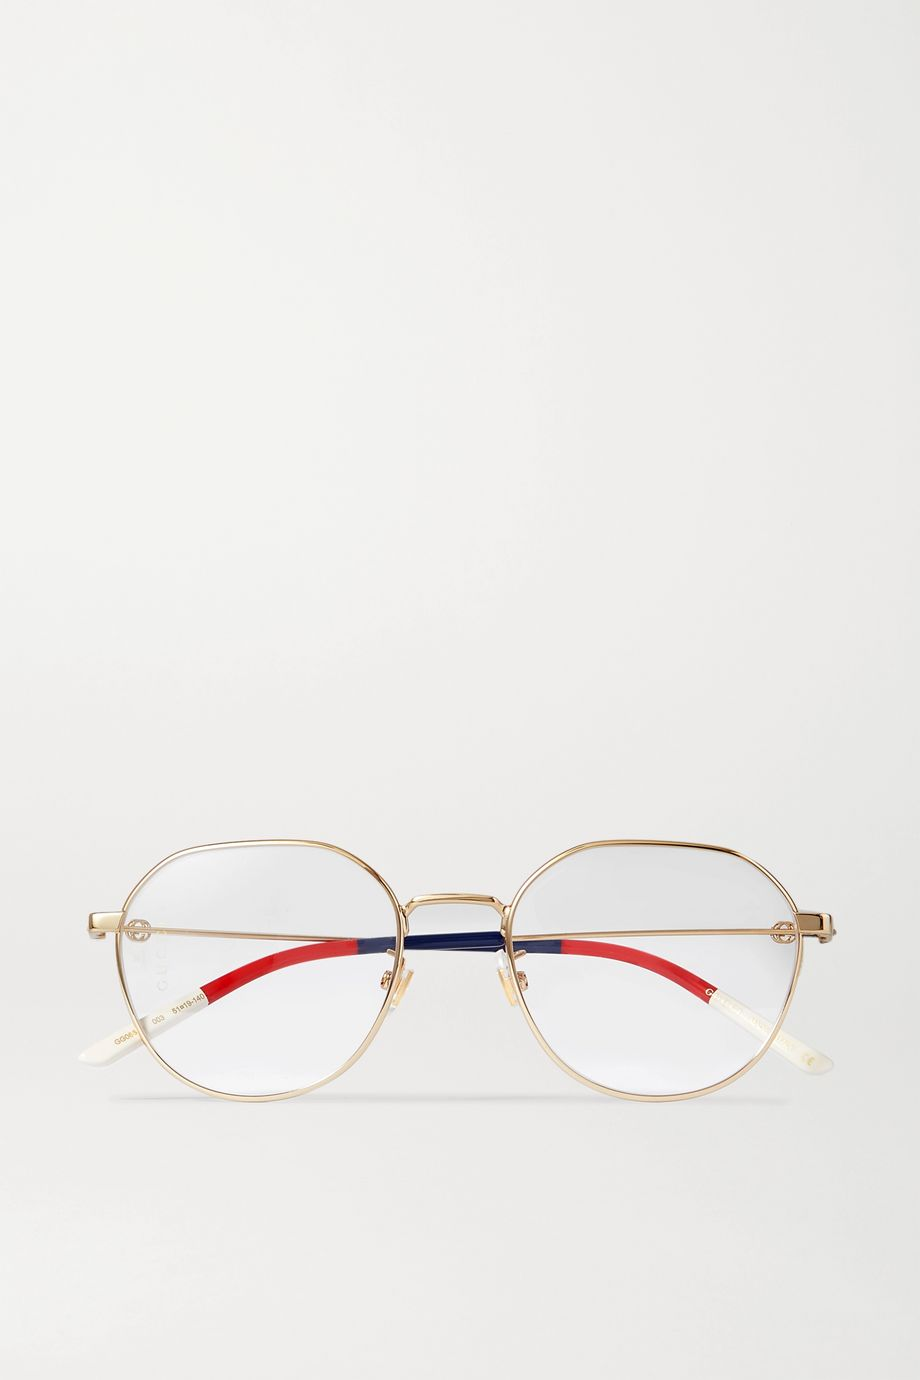 Gucci Round-frame gold-tone and striped acetate optical glasses